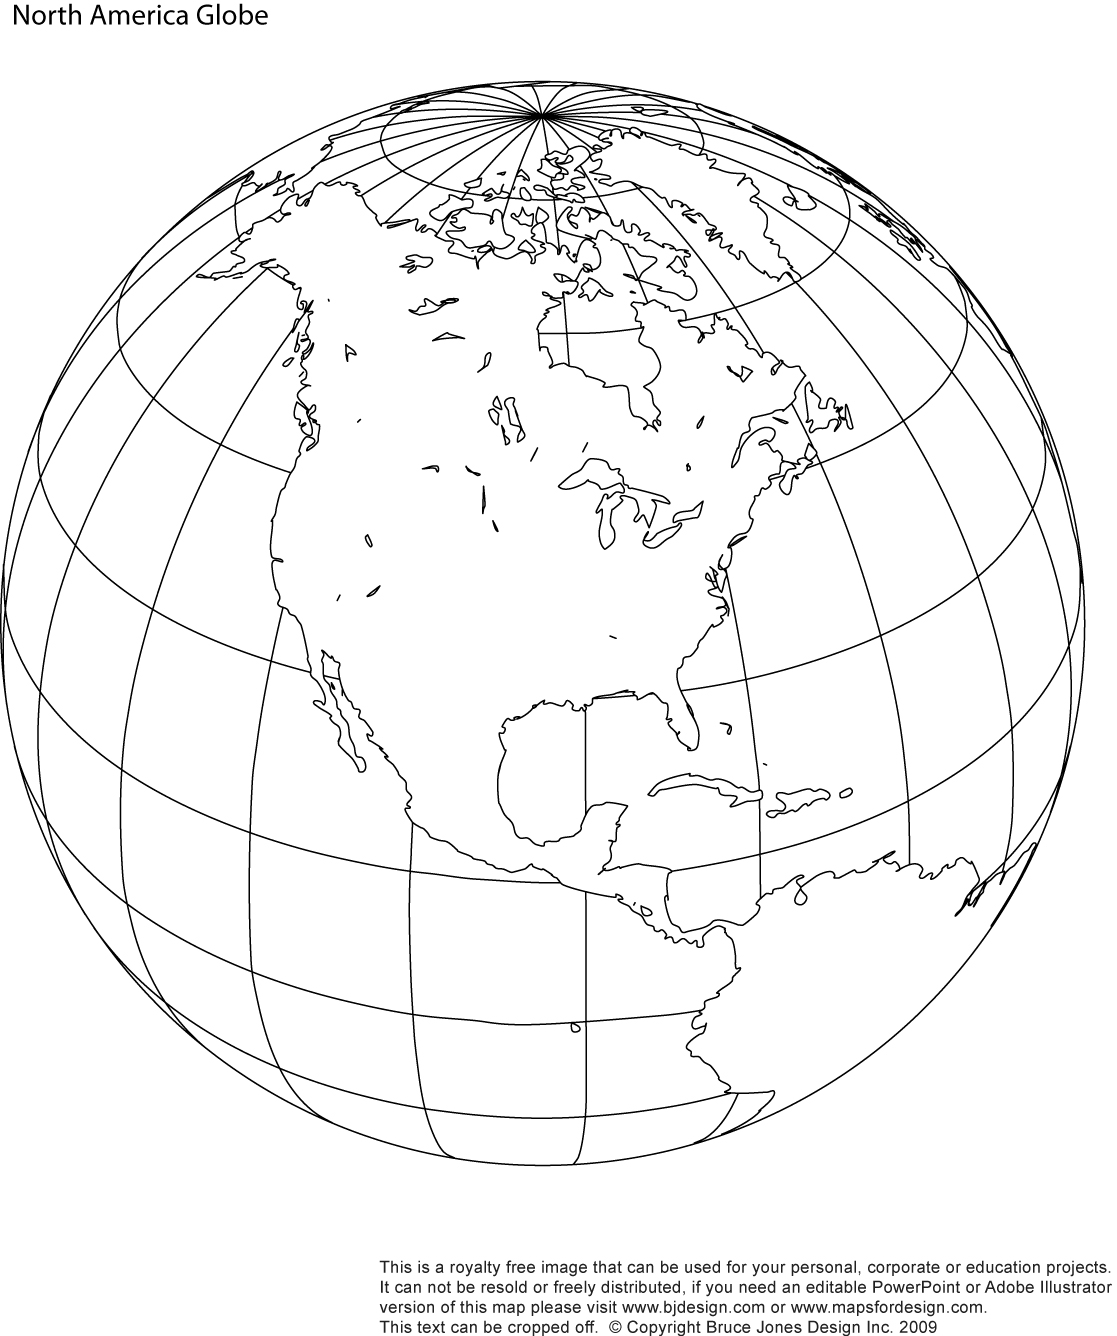 photo regarding Printable Globe referred to as Printable, Blank, Planet Environment World Maps Royalty Totally free, jpg